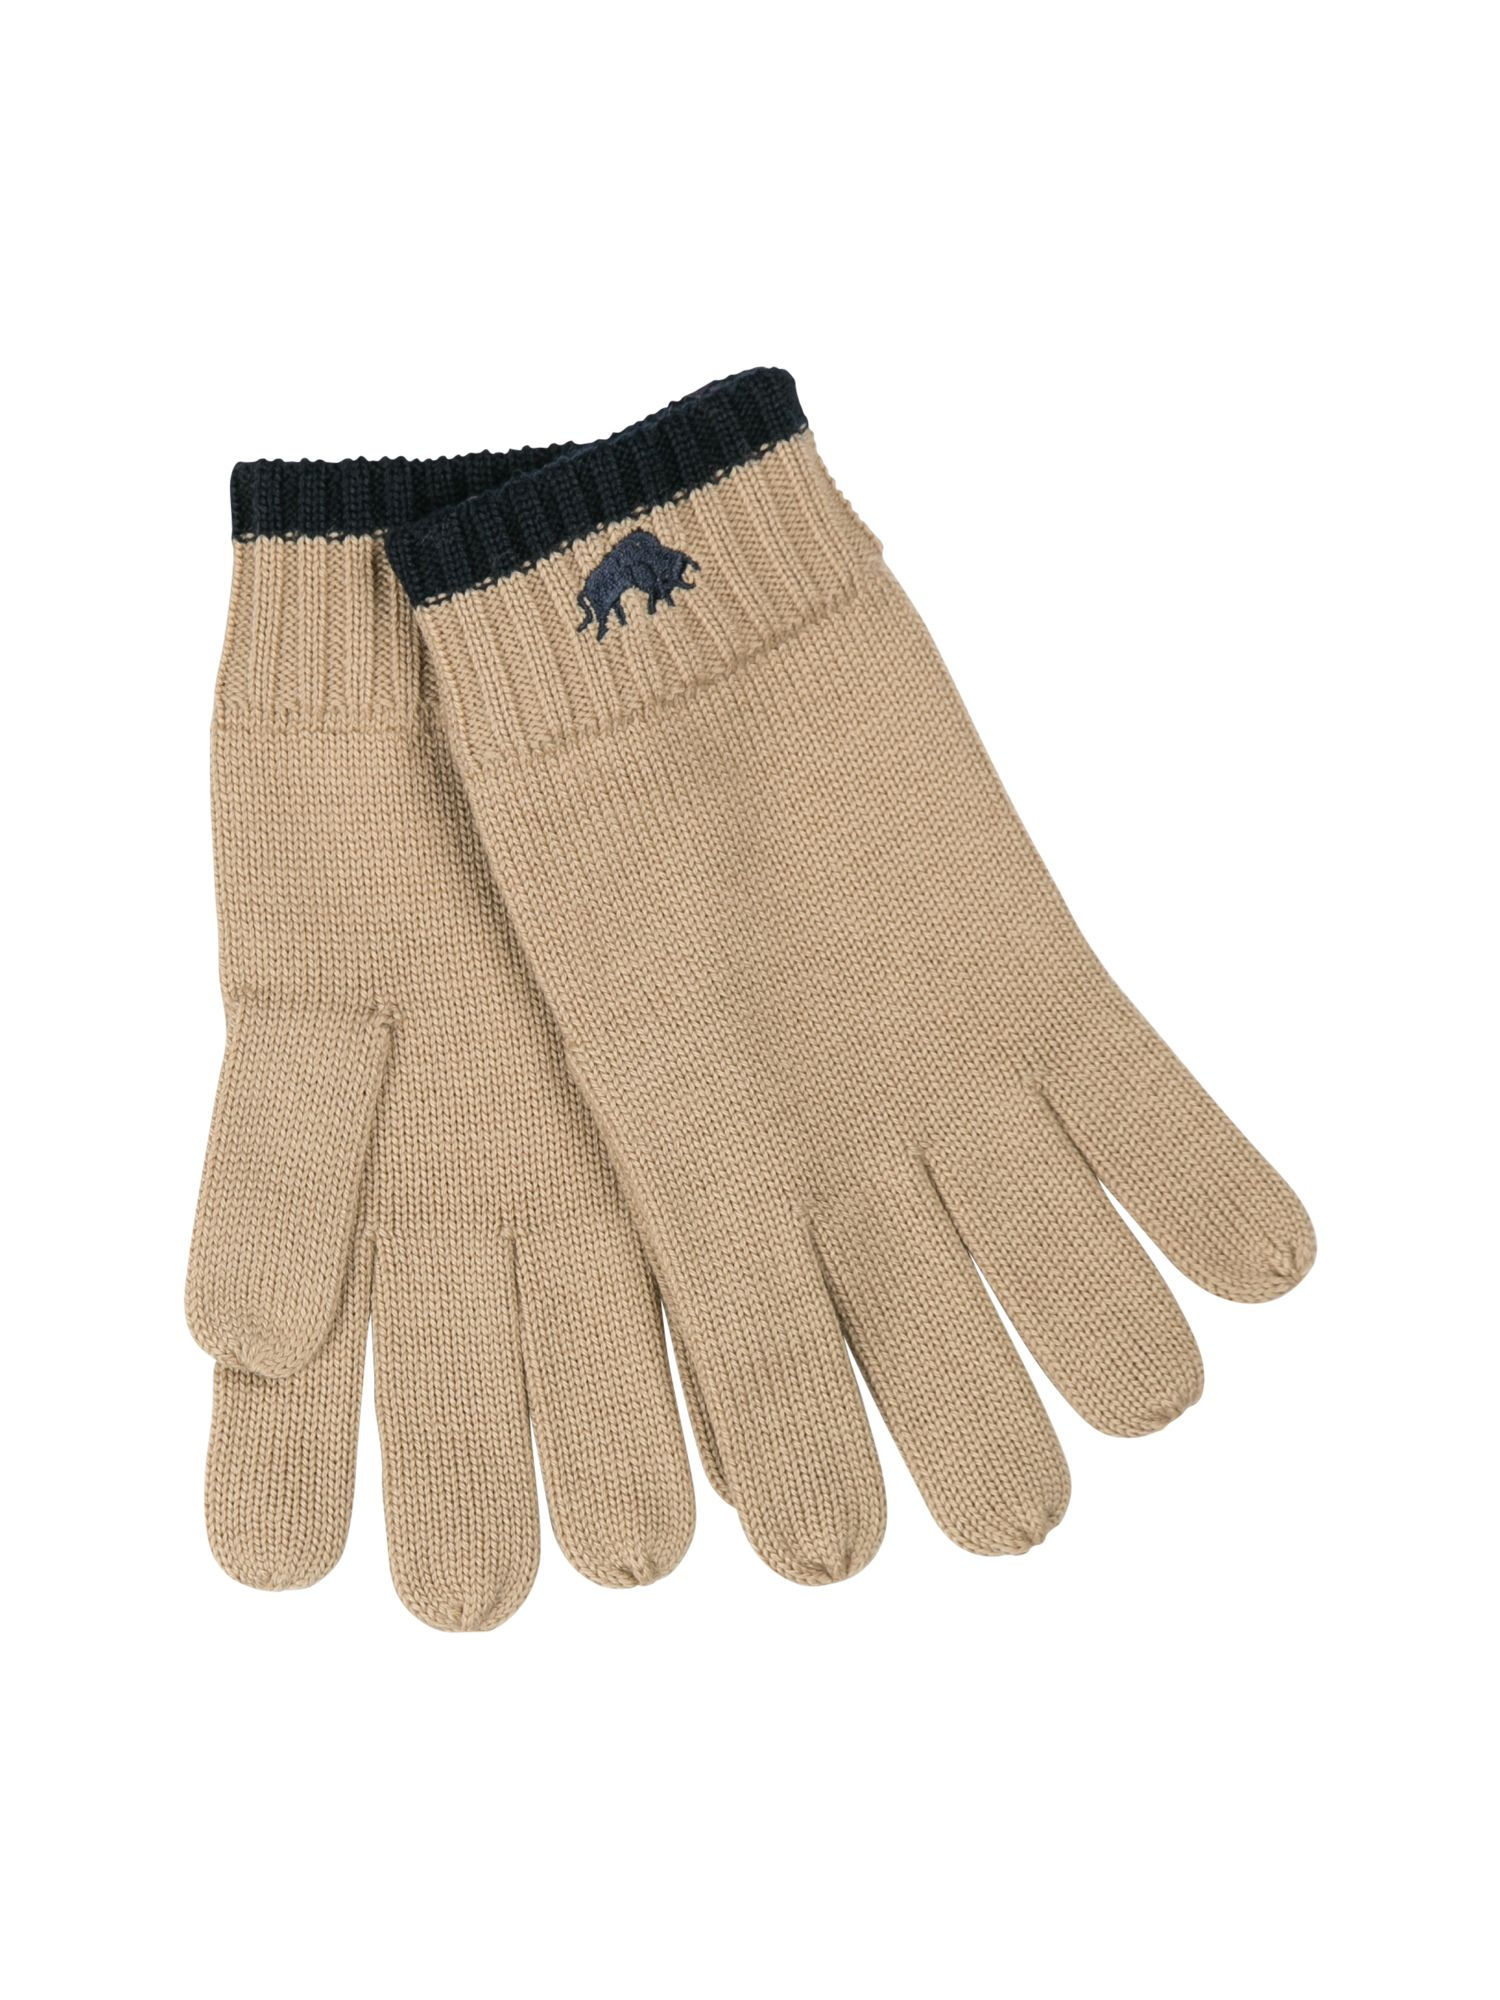 Rb wool gloves oatmeal